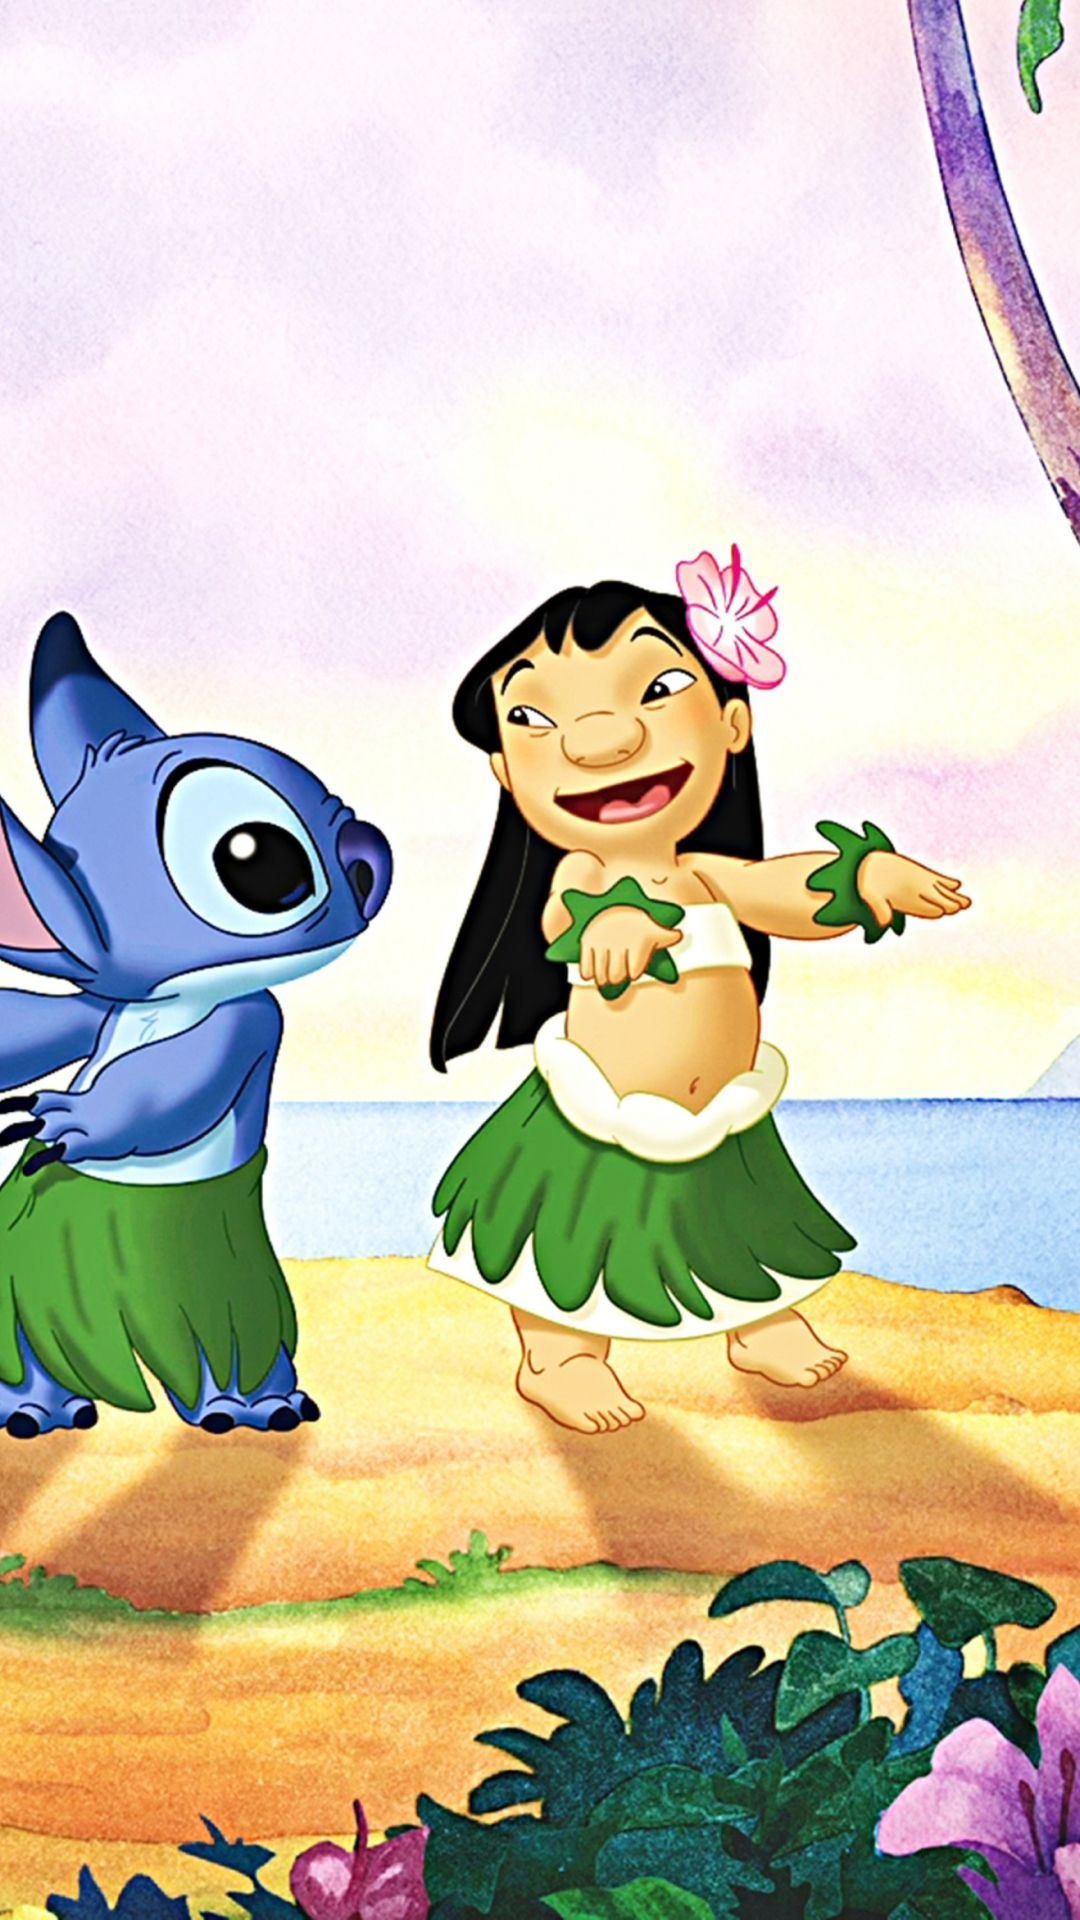 1080x1920 wallpaper.wiki-Lilo-Stitch-Disney-Iphone-Wallpaper-PIC-WPD003467 ...